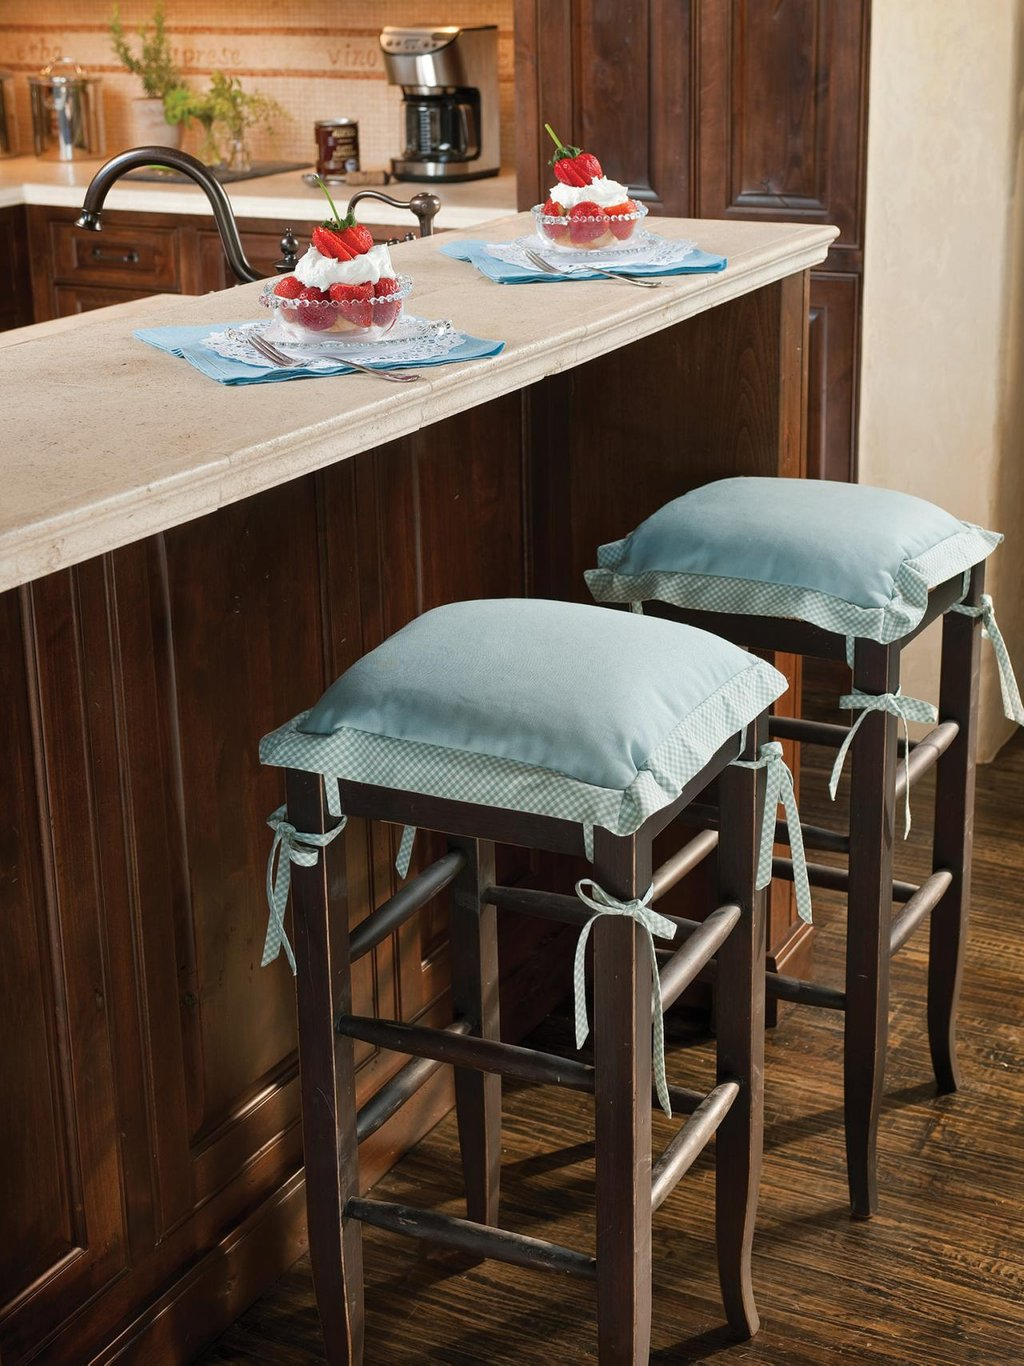 Backless Wood Counter Stools Top Solid Wood Counter Ideas Kitchen Counter Stools